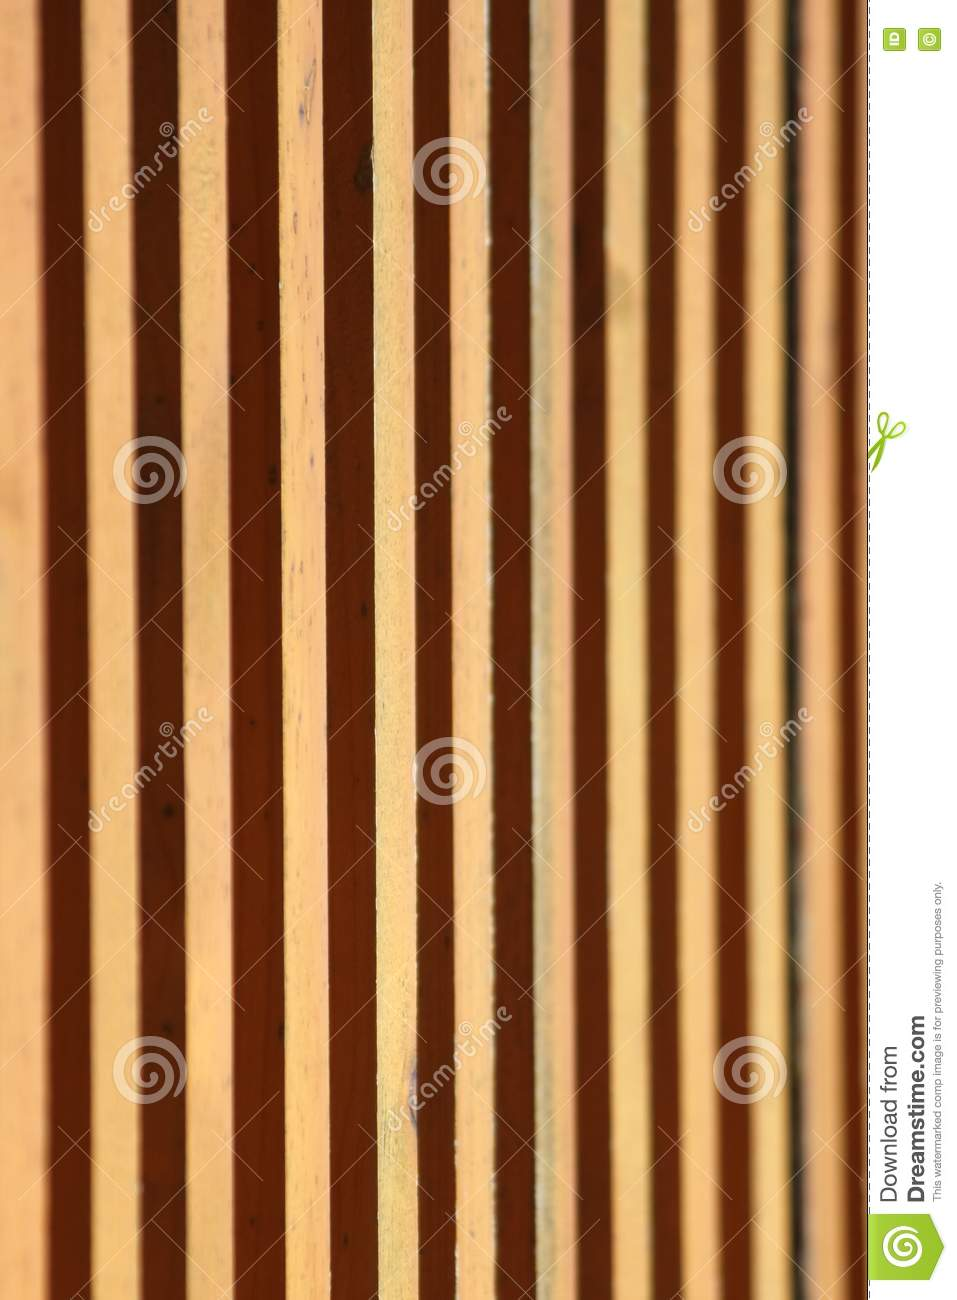 Vertical Wooden Beams Texture Stock Image Image Of Decor